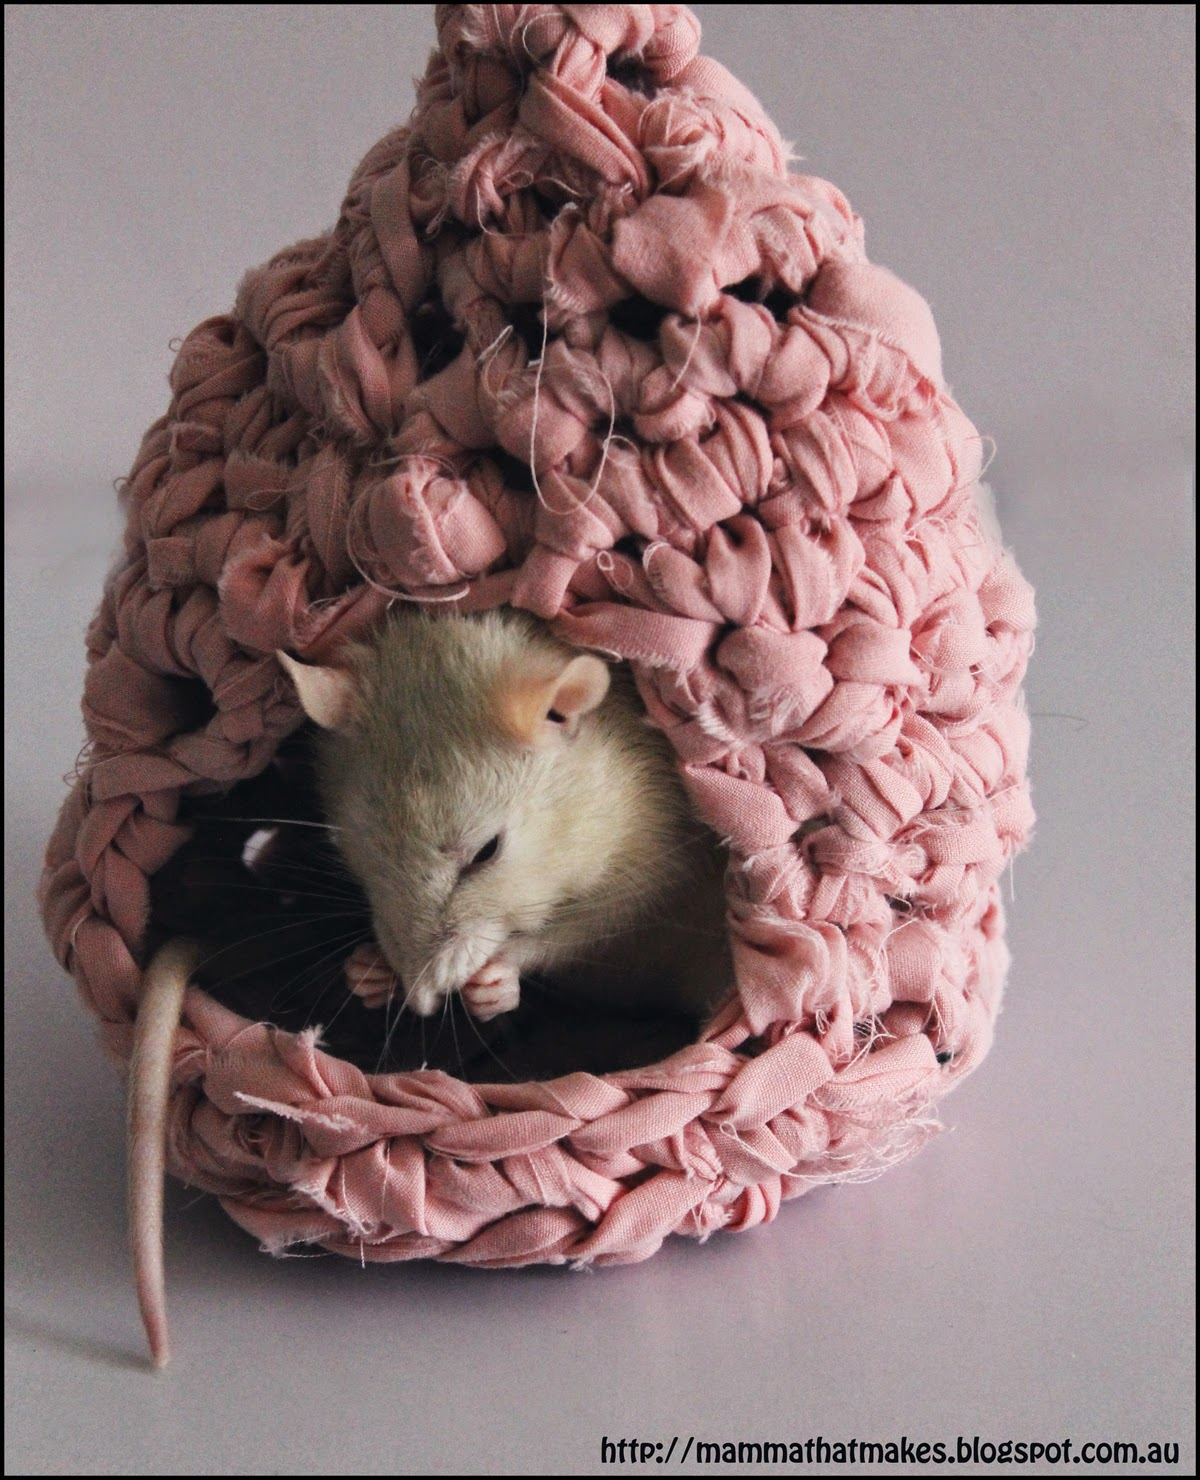 Mamma That Makes: Rattie Houses from Upcycled Bedsheets